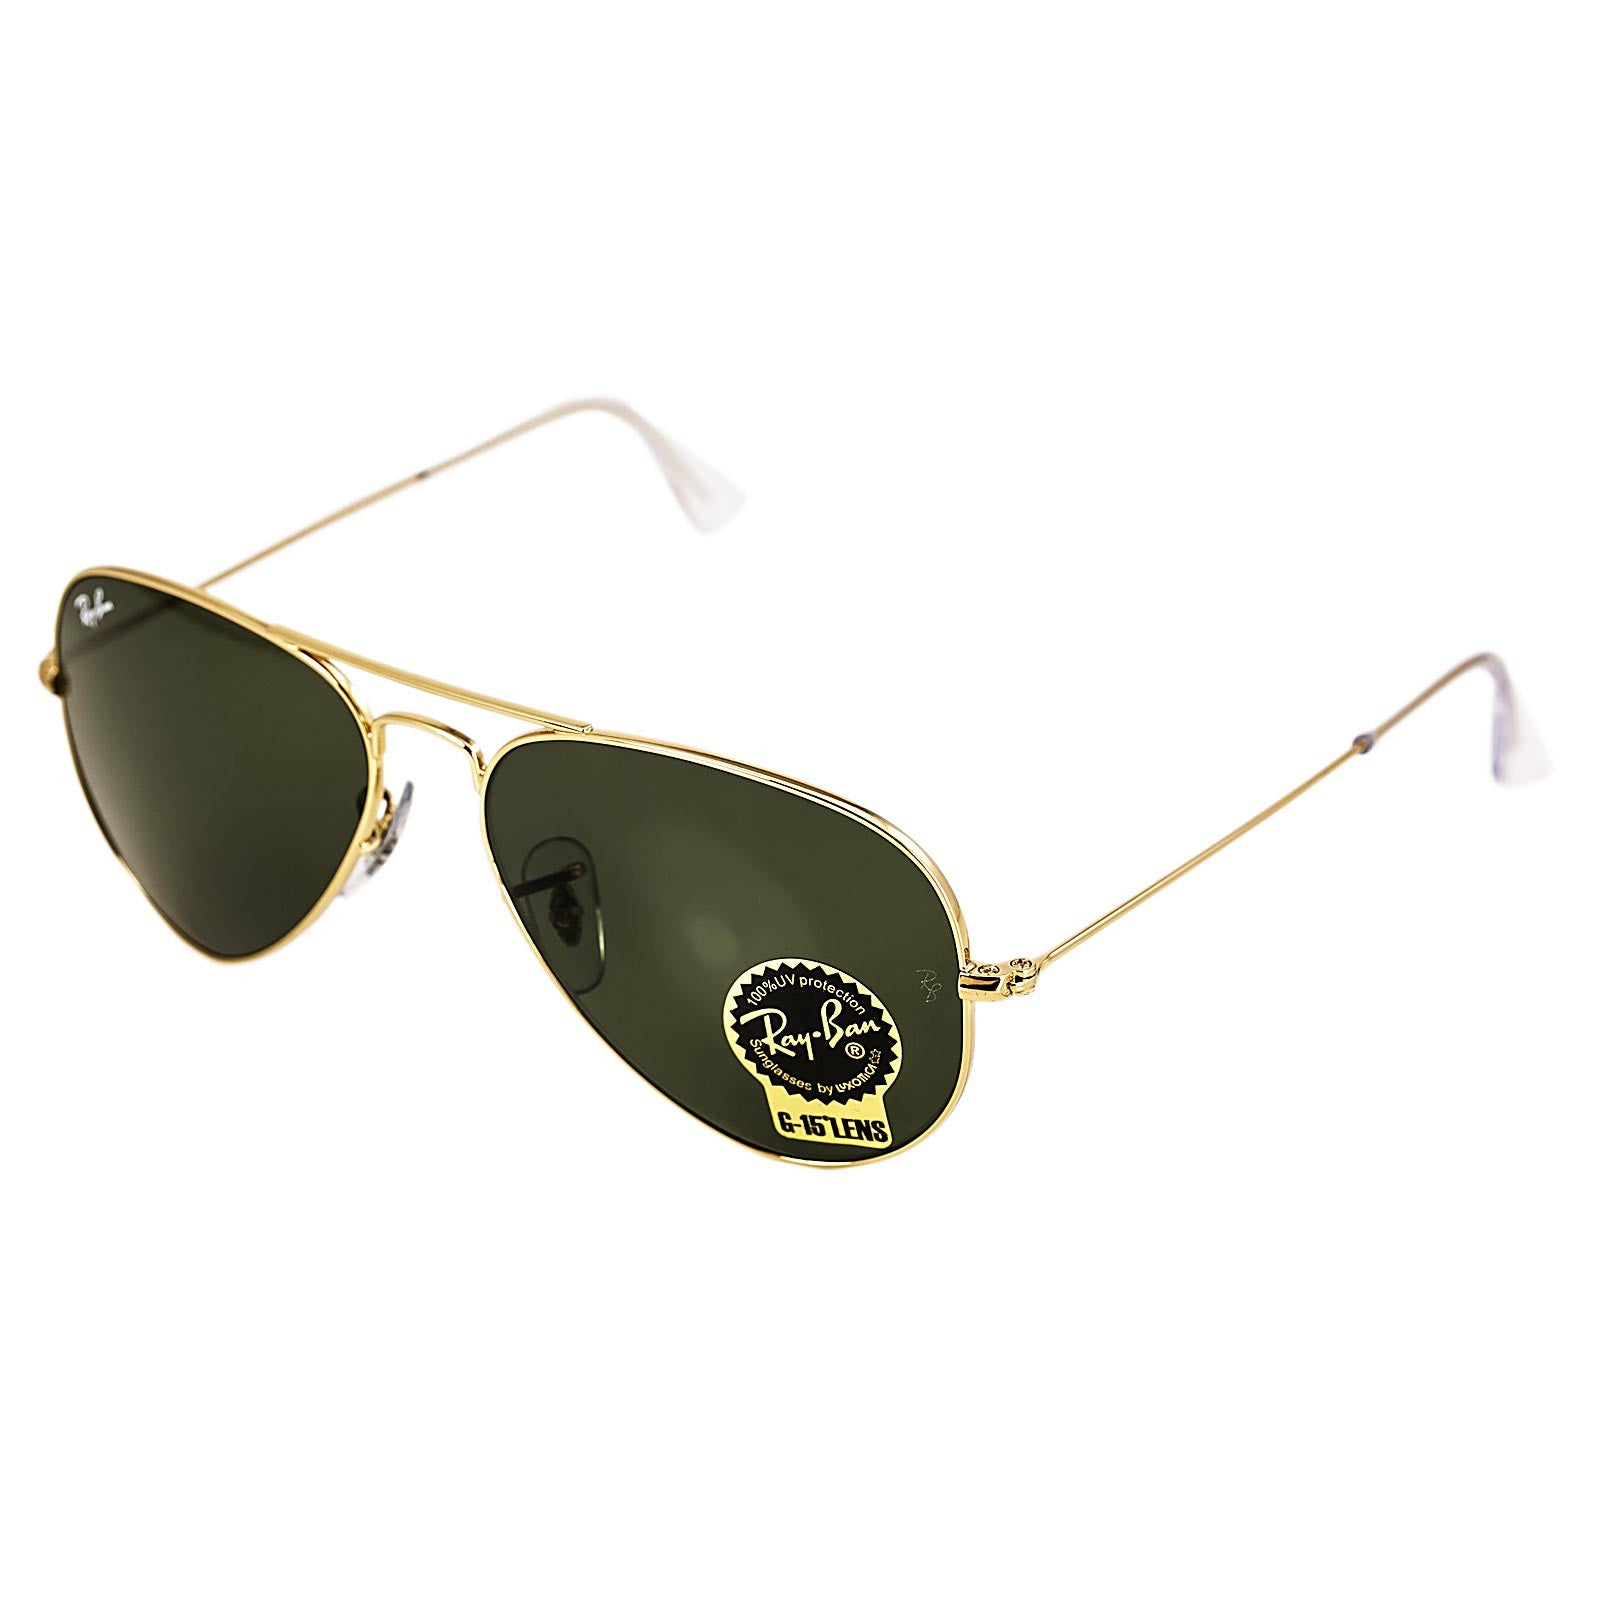 Ray-Ban RB 3025 W3234 55 Aviator Green Lenses Gold Tone Metal Frame Sunglasses